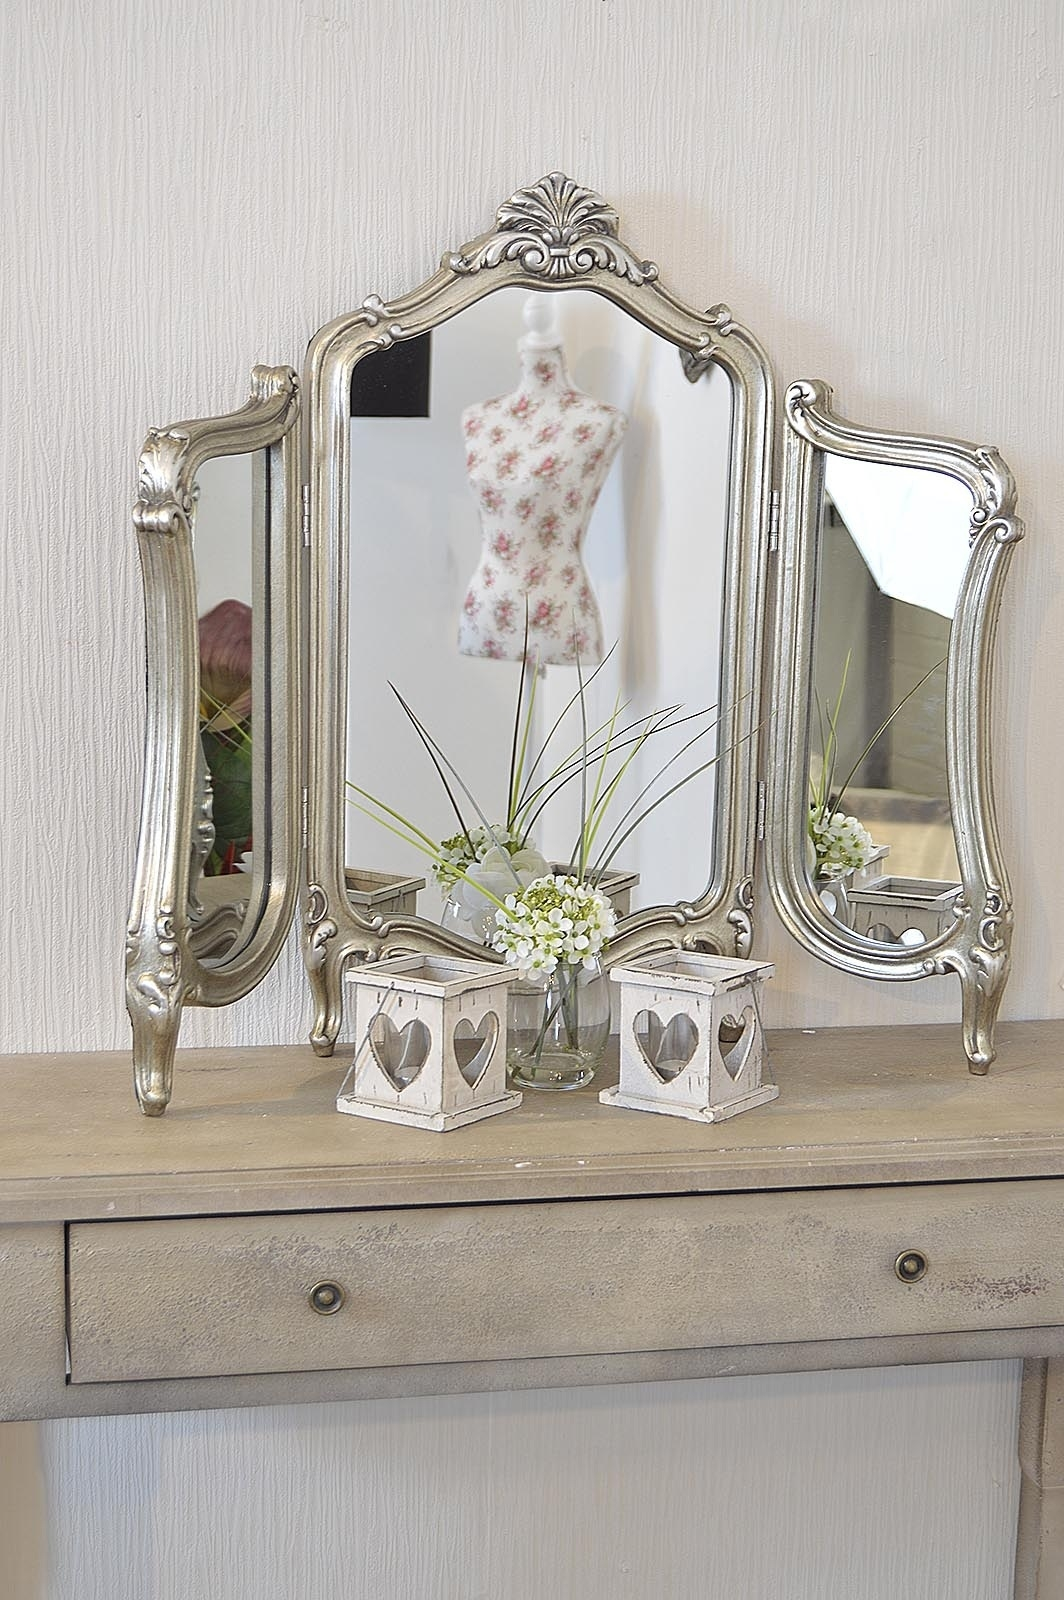 Stunning Antique Design Free Standing Dressing Table Mirror M315 With Regard To Free Standing Dressing Table Mirrors (View 2 of 15)